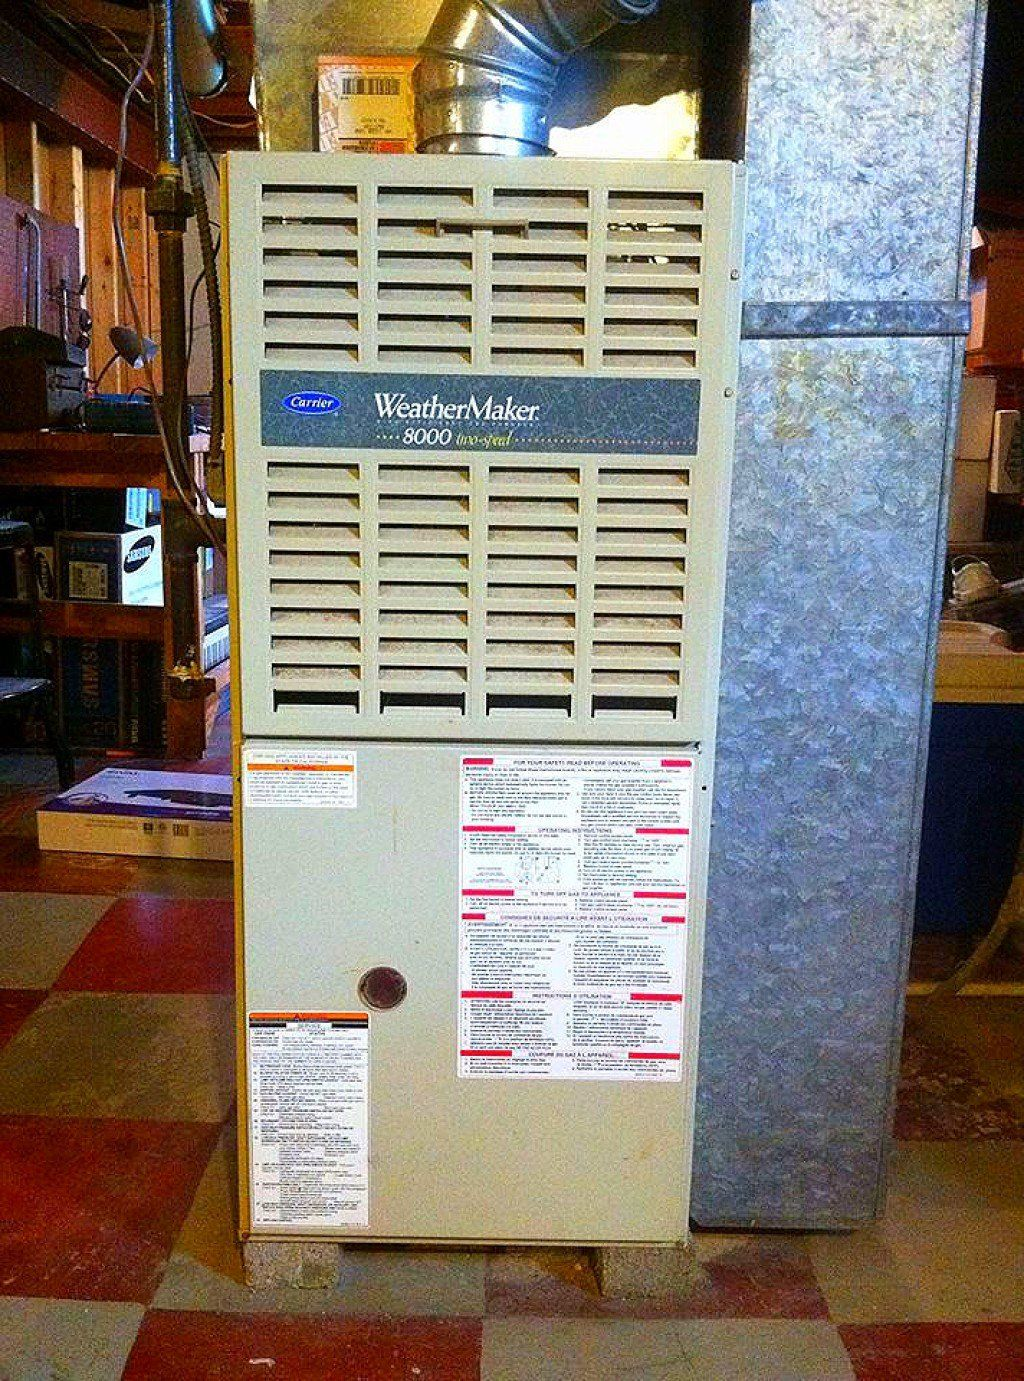 How to Quiet a Noisy Furnace Ventilation duct, Clean air